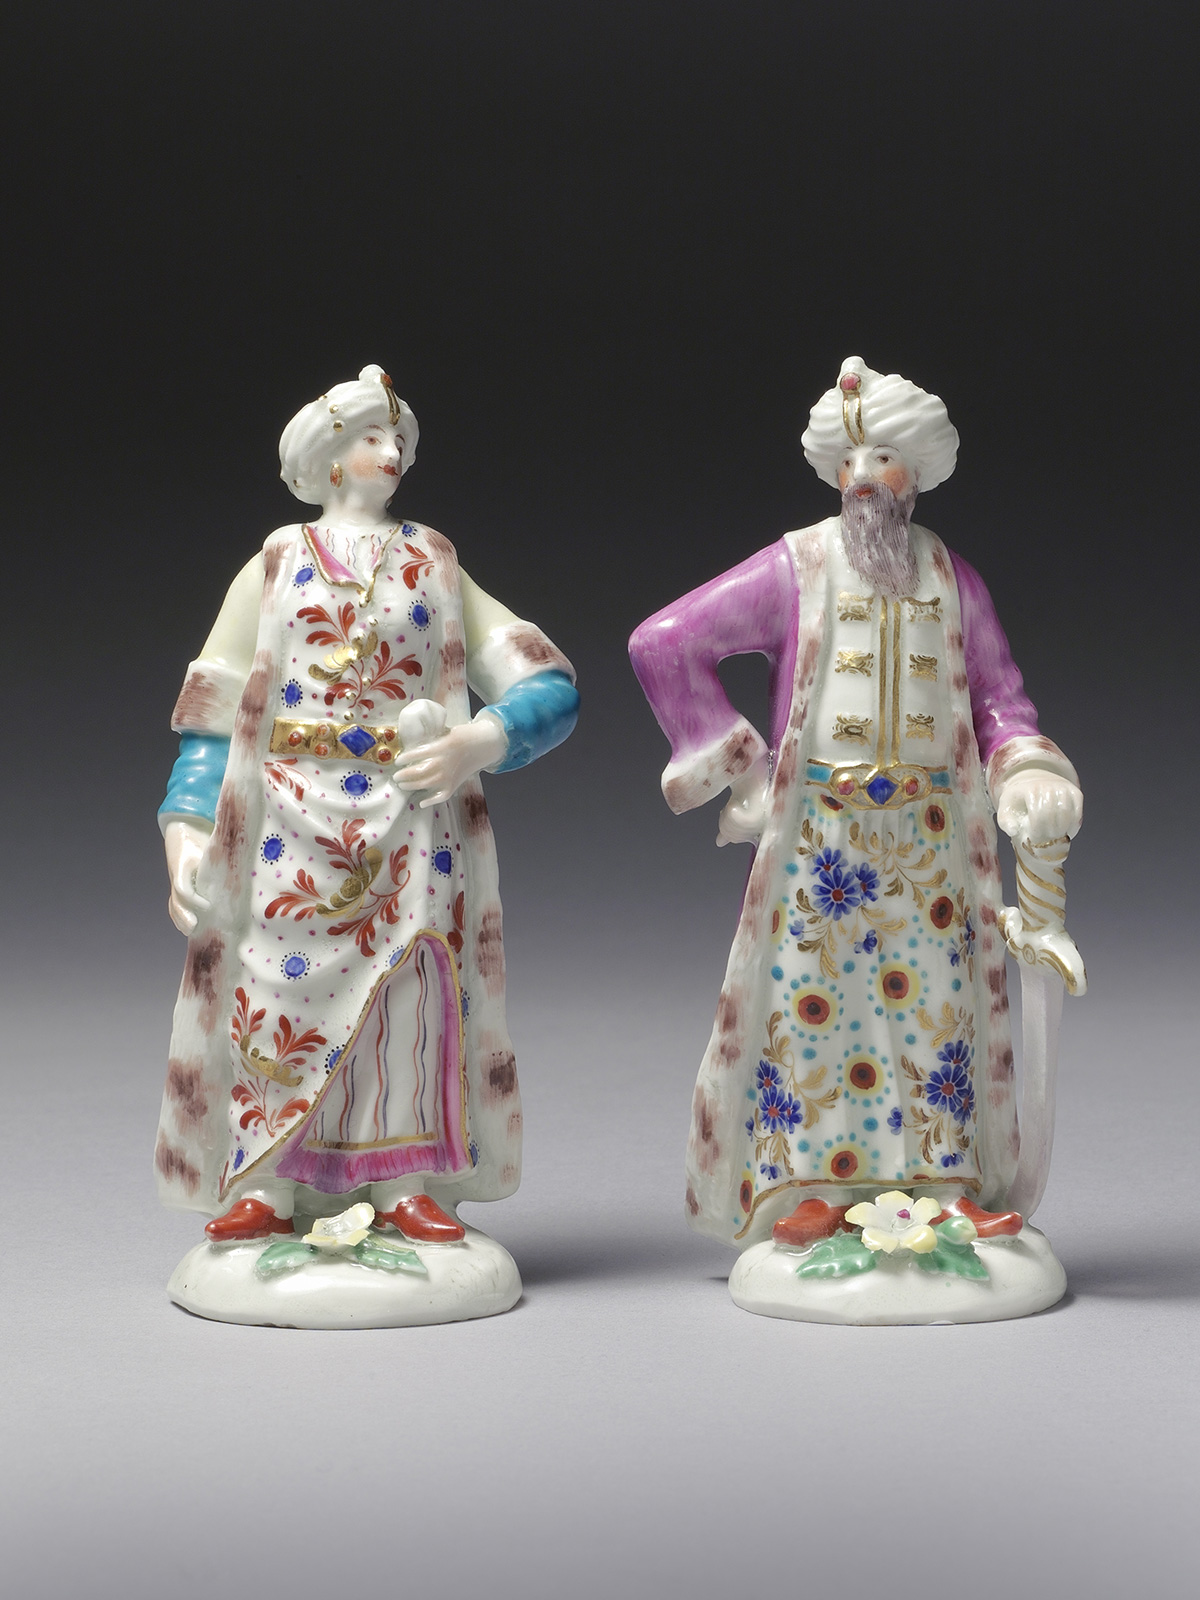 Pair of First Period Dr Wall Worcester Figures of a Turk and the Levantine Lady